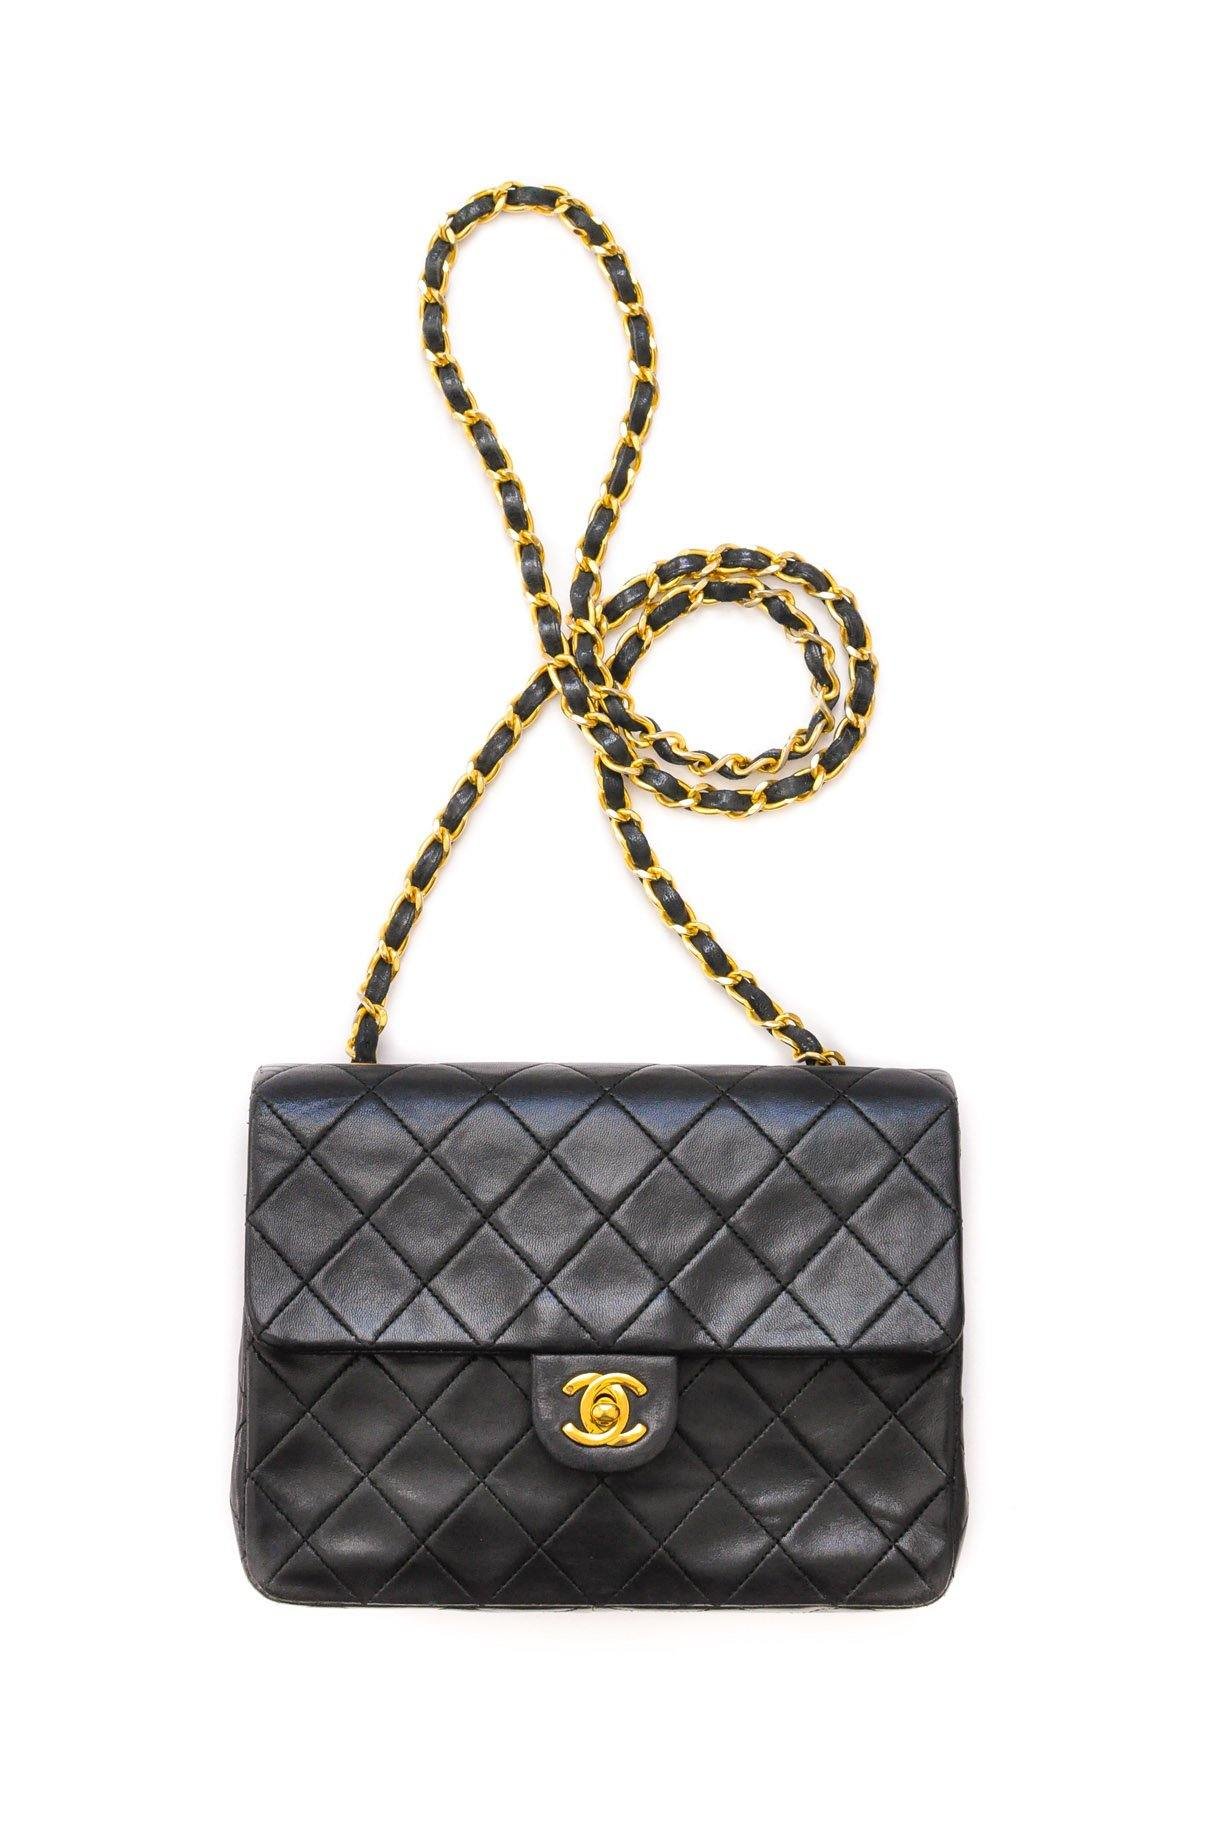 Chanel Small Black Flap Bag